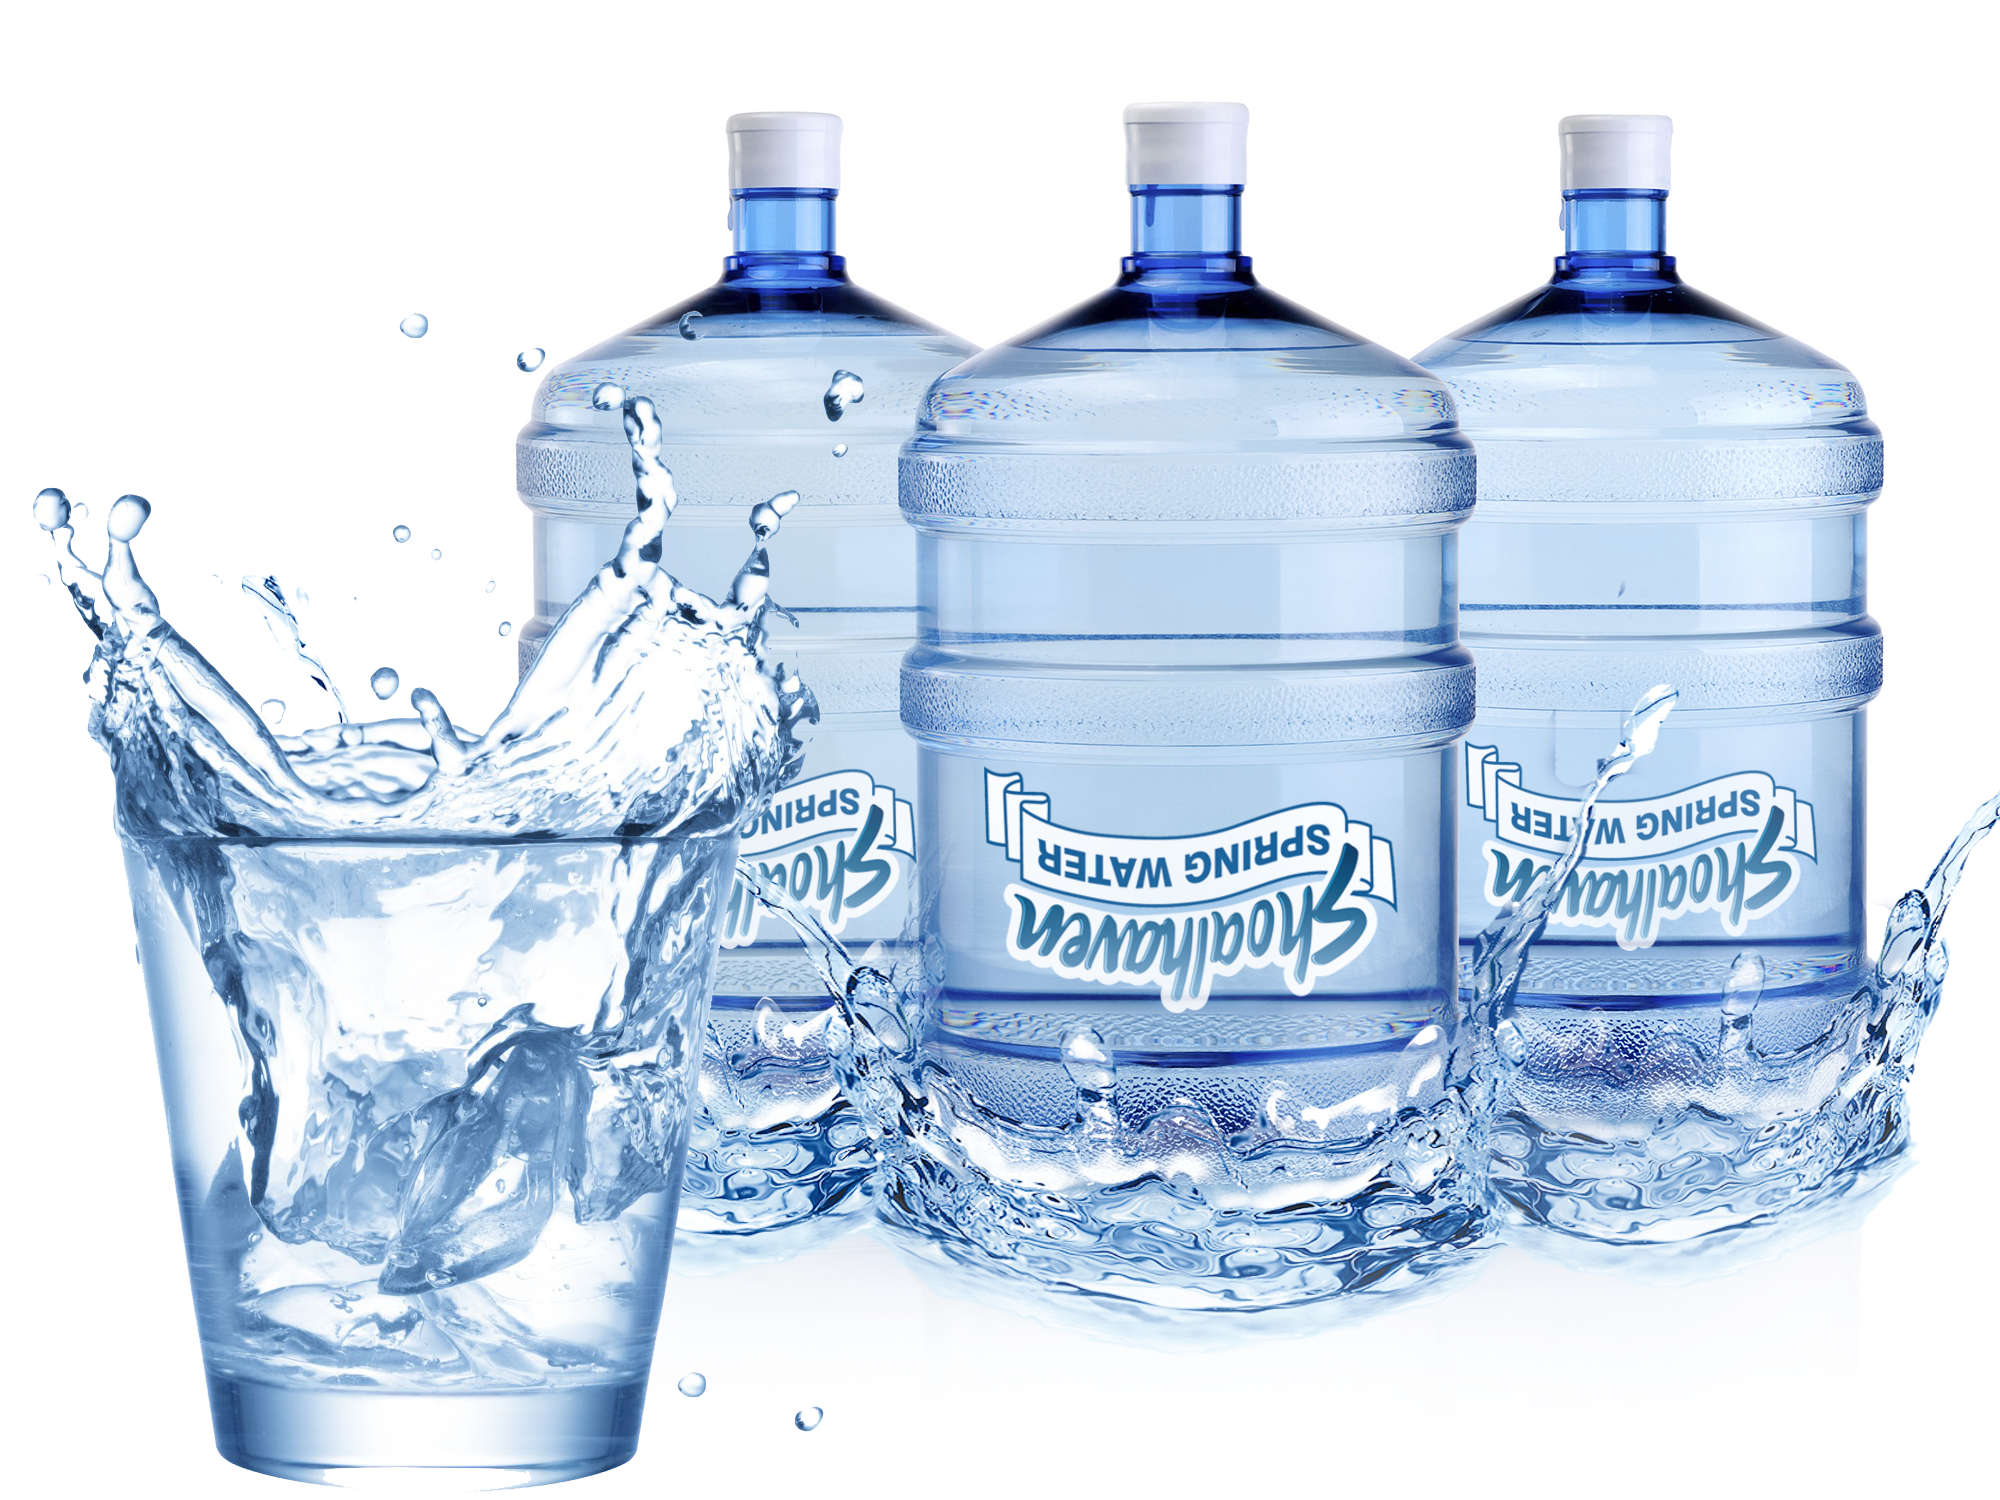 Spring water png. Shoalhaven has been distributing